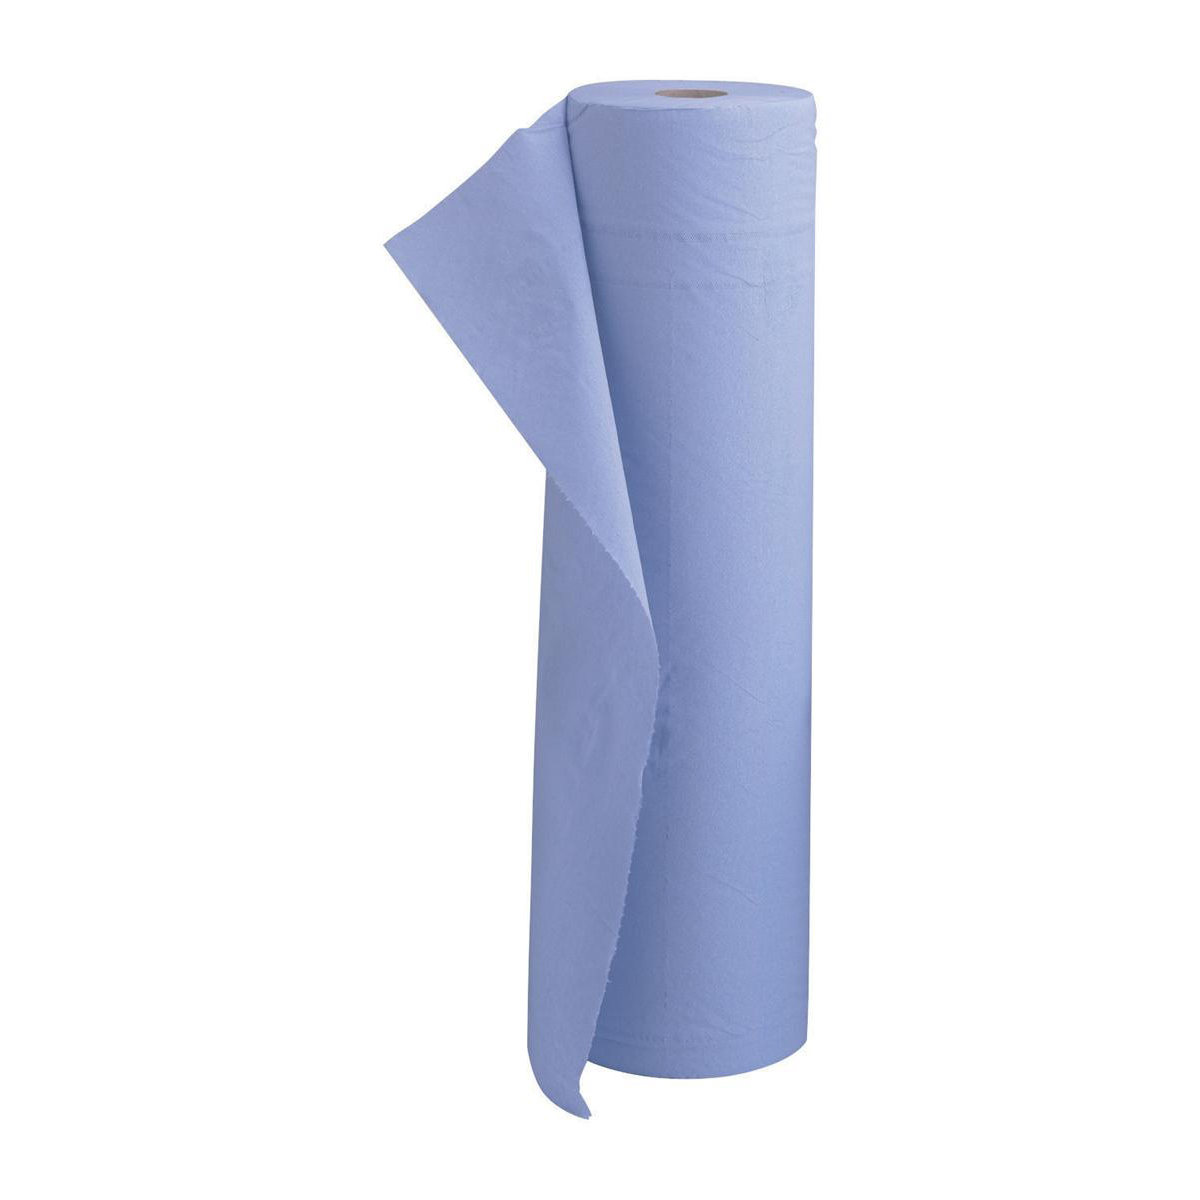 Hand Towels & Dispensers 5 Star Facilities Hygiene Roll 20 Inch Width 100 Percent Recycled 2-ply 130 Sheets W500xL457mm 40m Blue